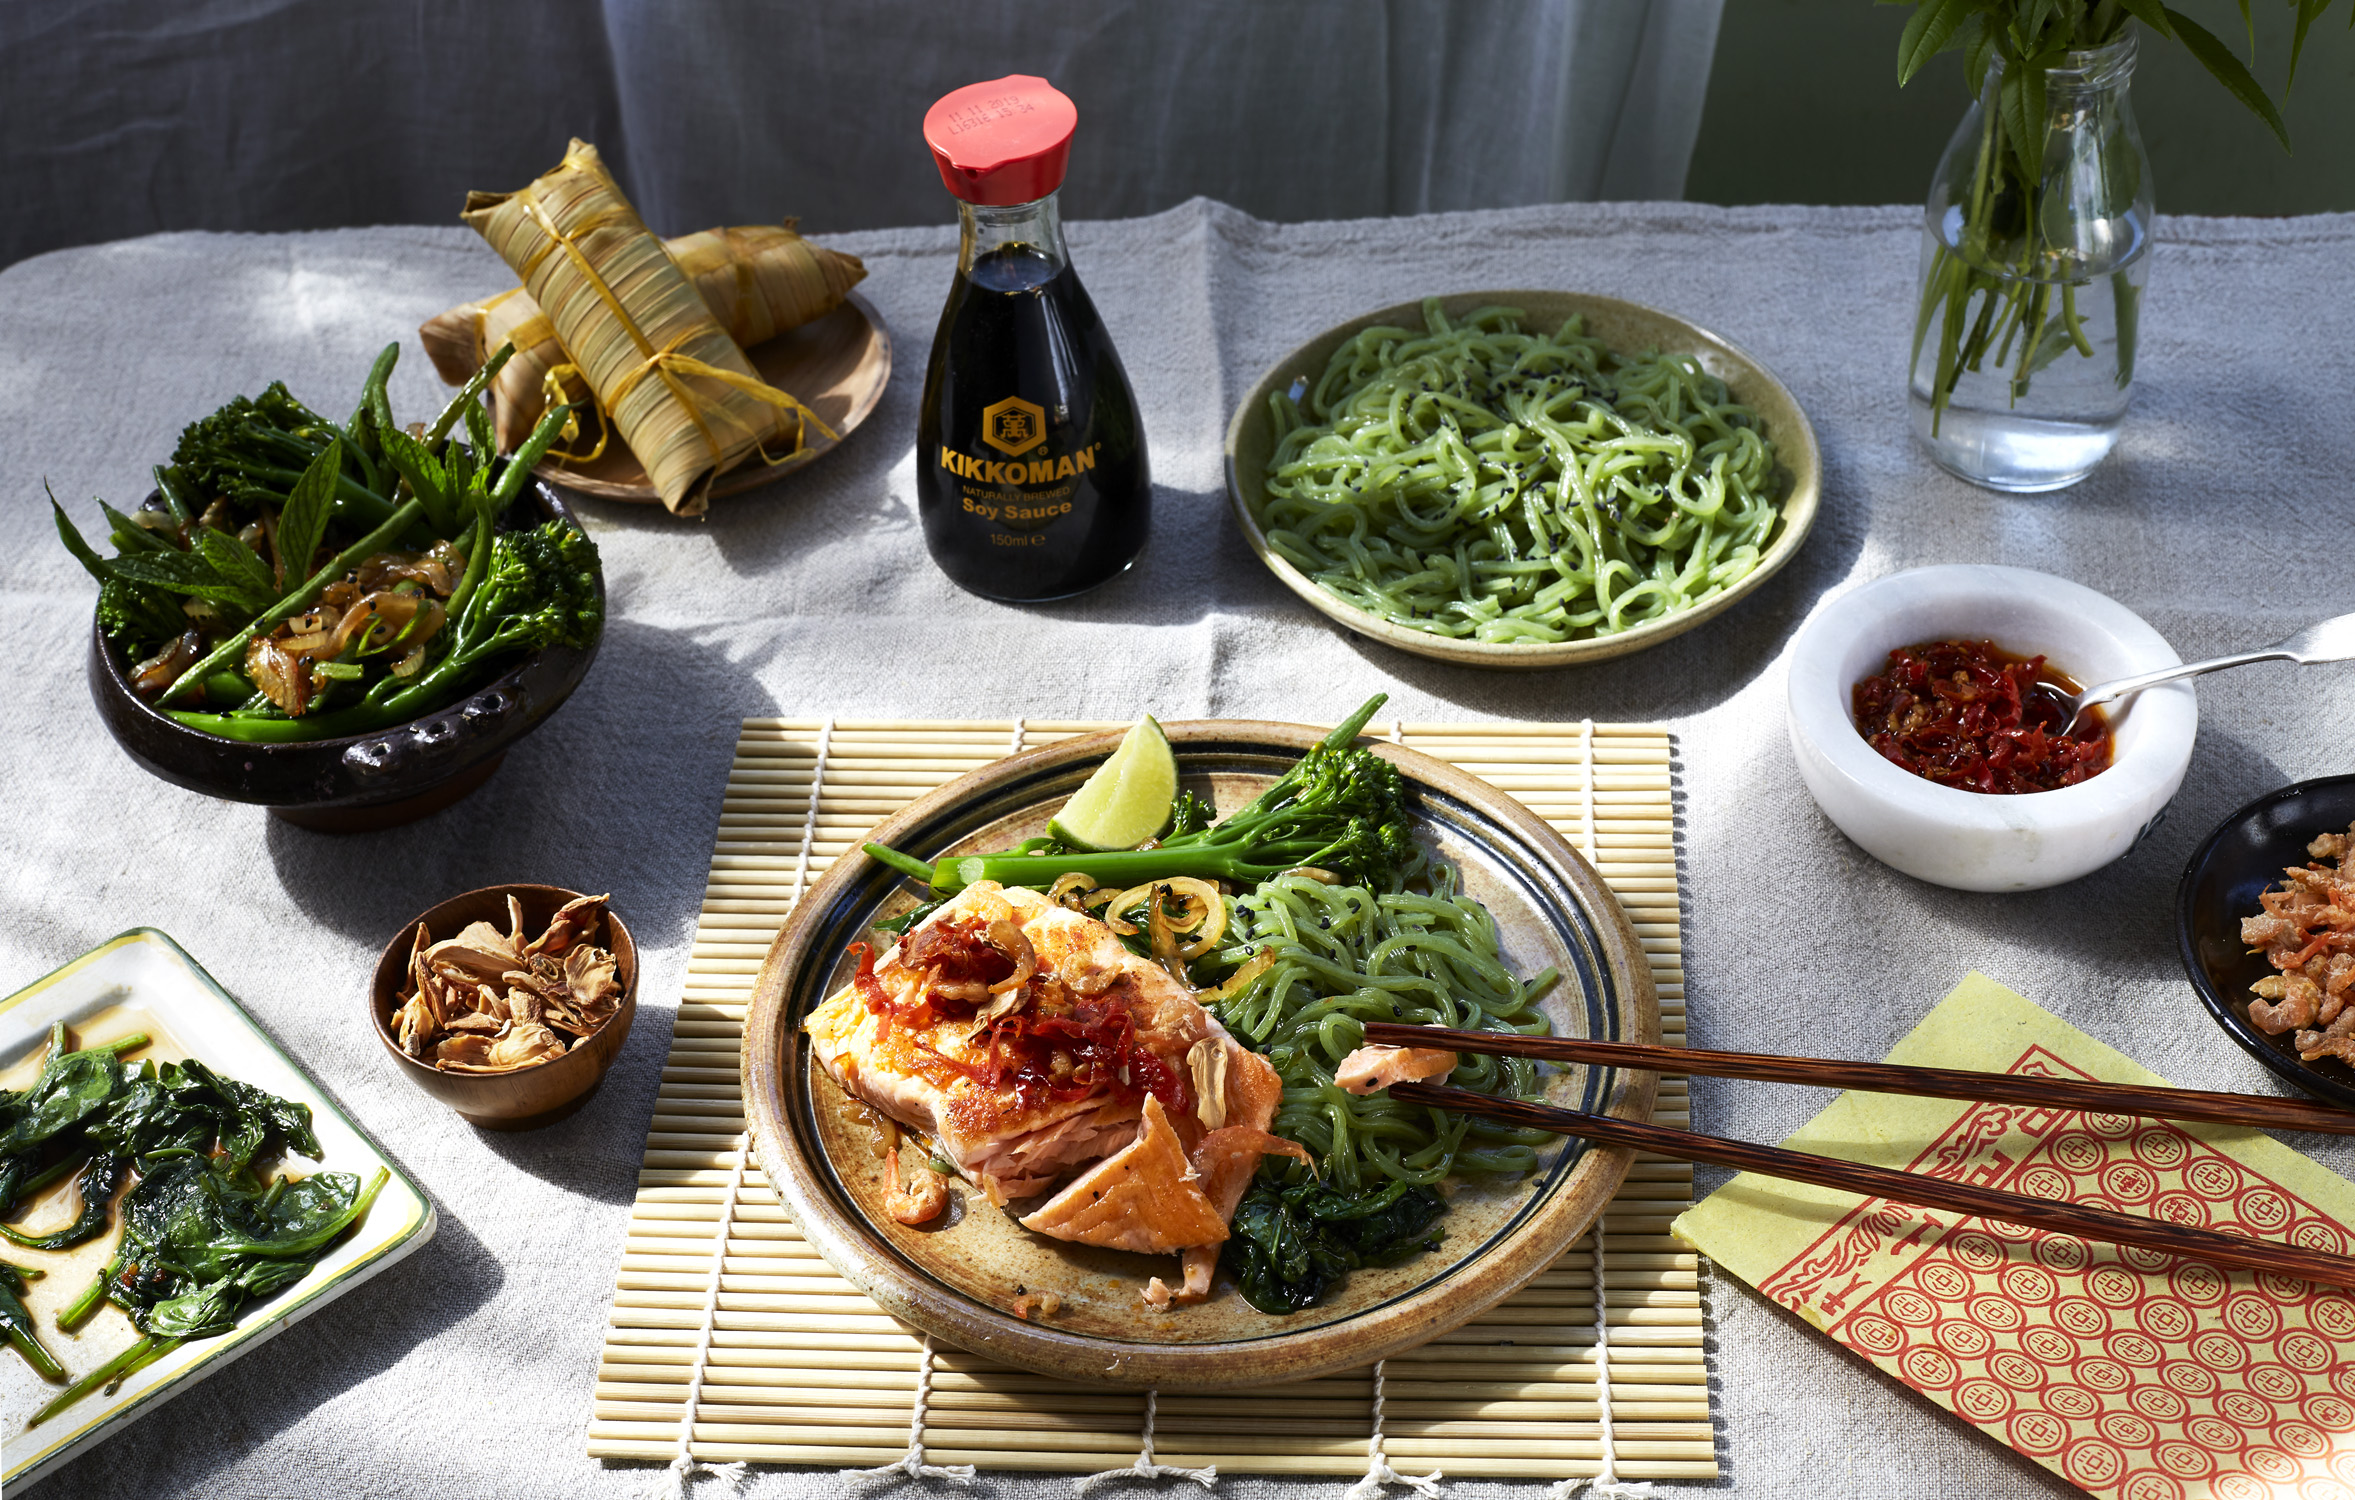 KIKKOMAN Food Styling: Laurie Perry